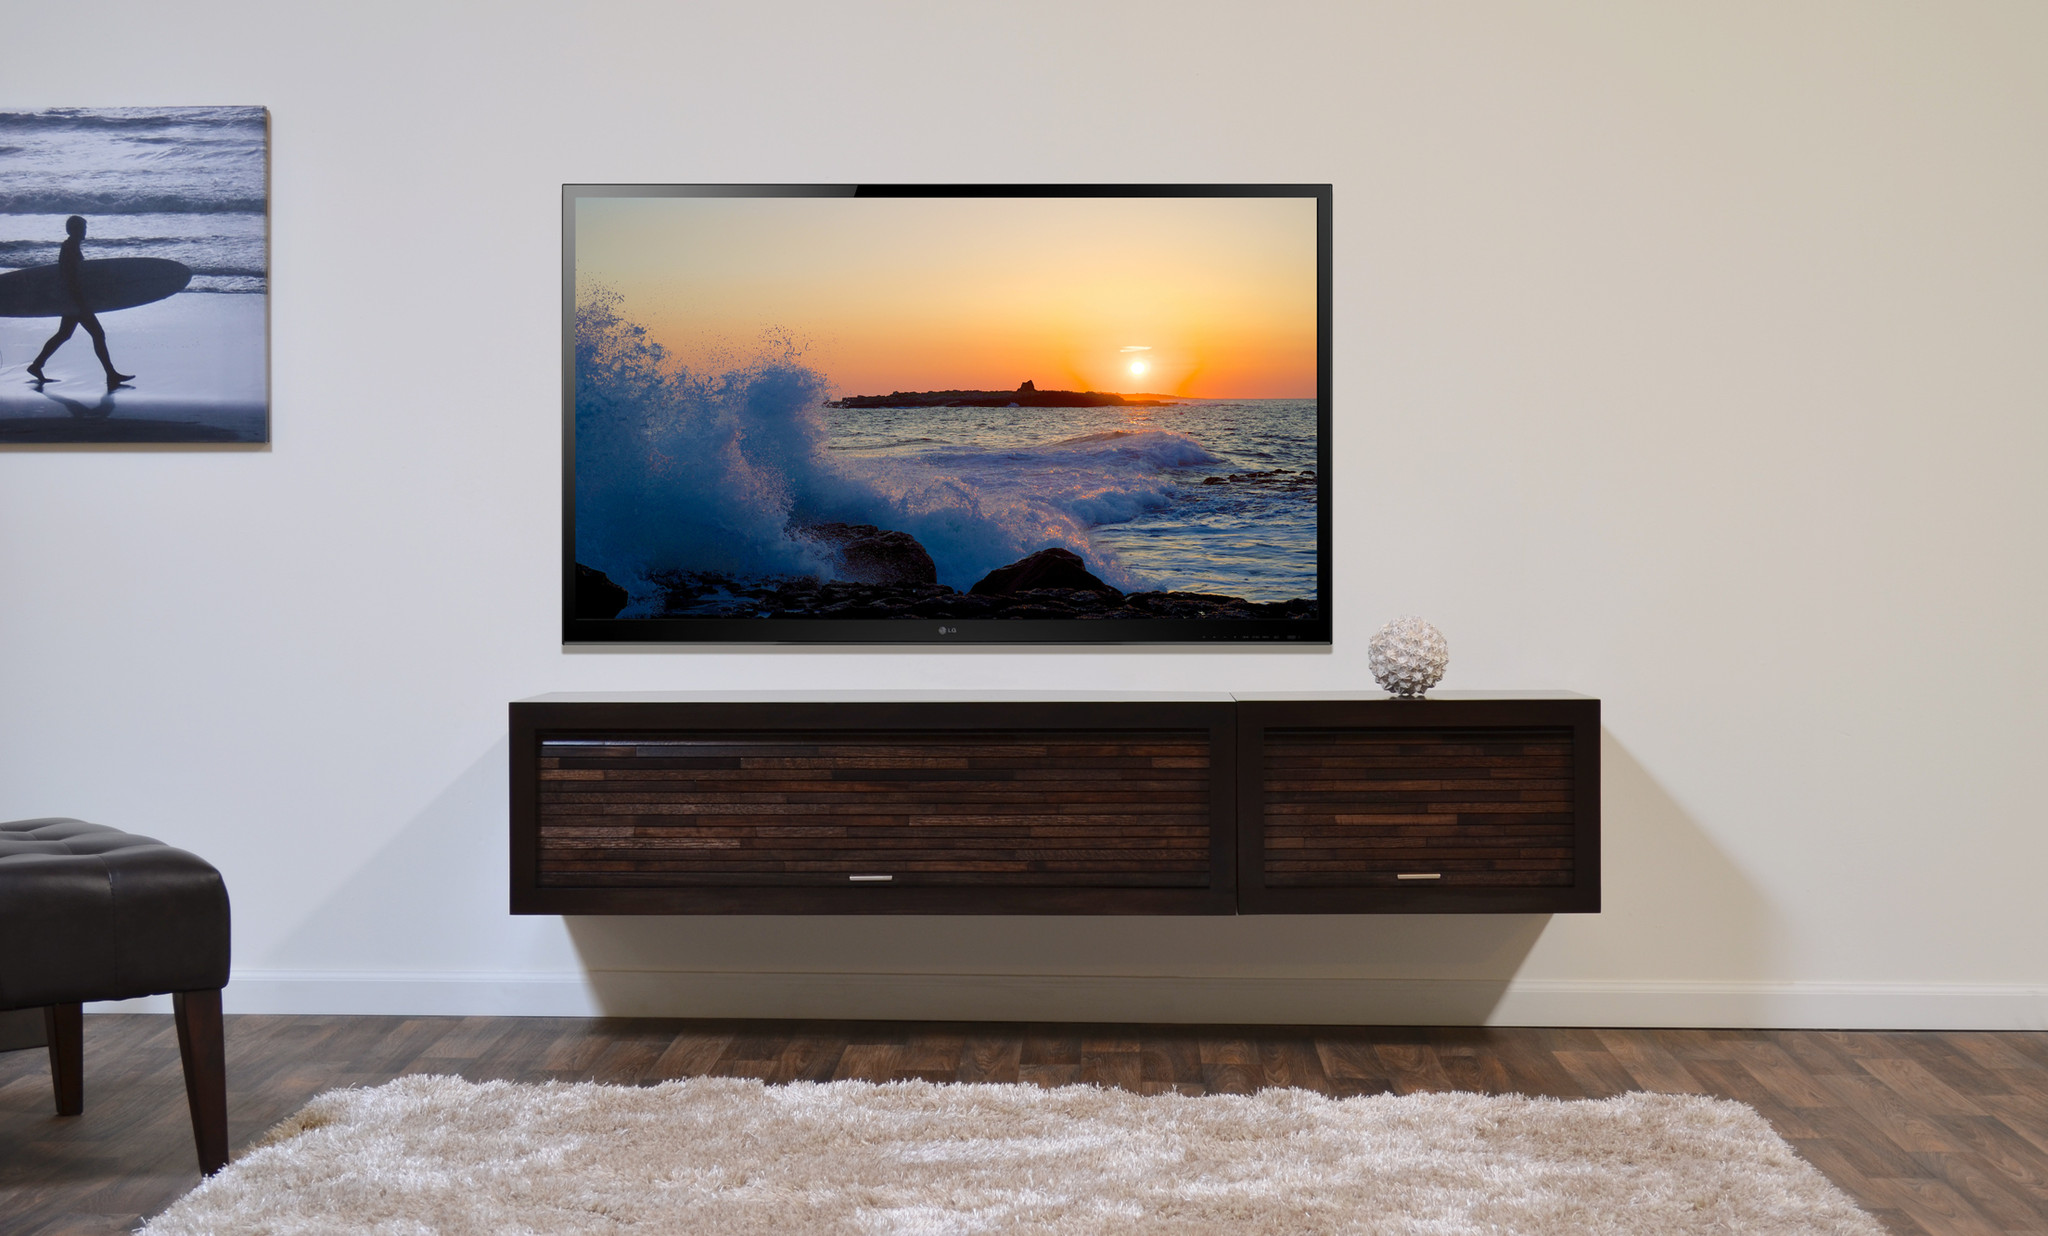 Wood Floating Tv Console With An Ornamental Ball And A Large Flat Screen No Color